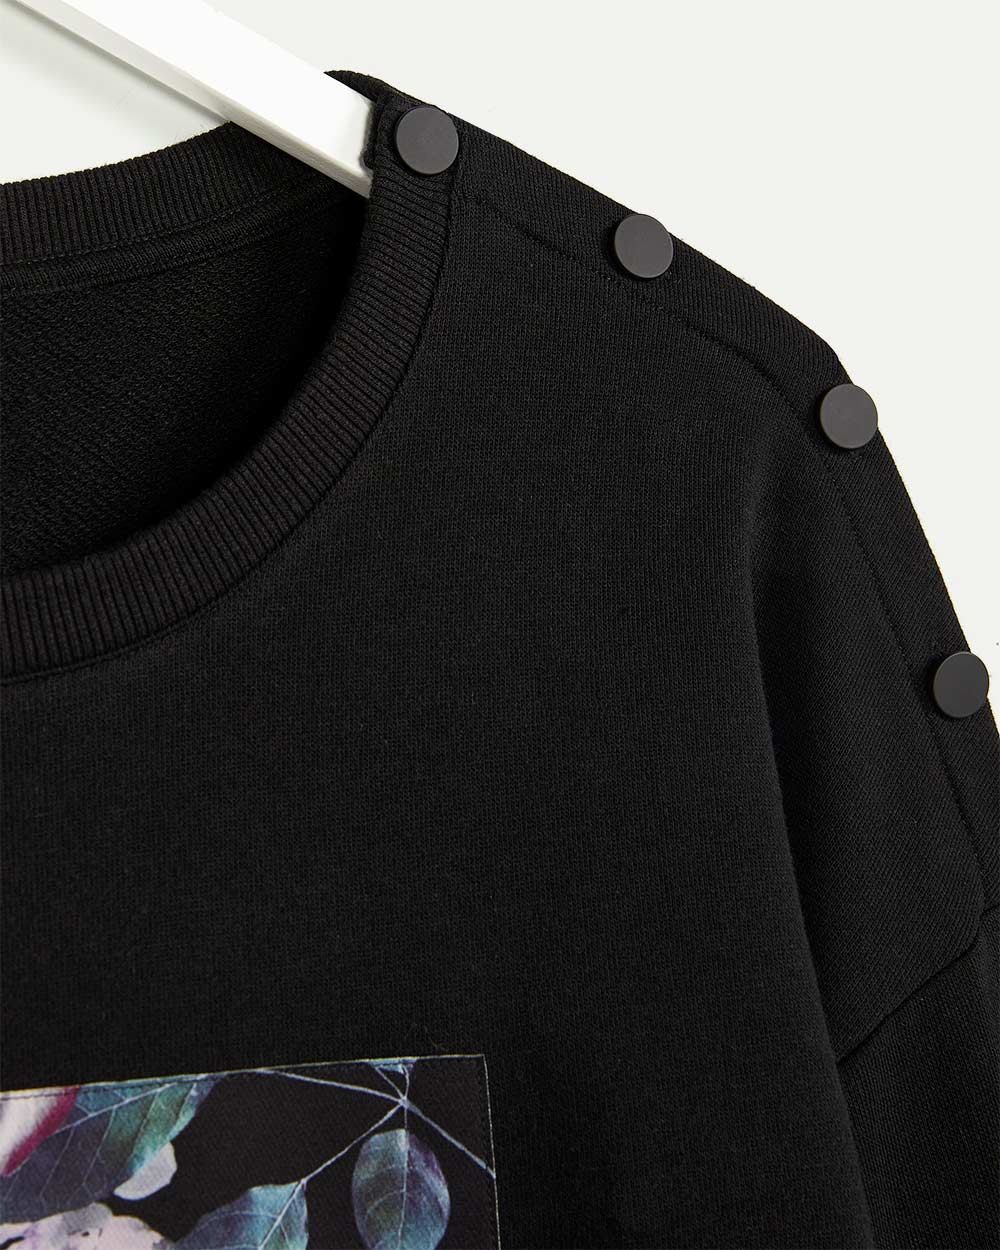 Long Sleeve Printed Sweatshirt with Snap Buttons